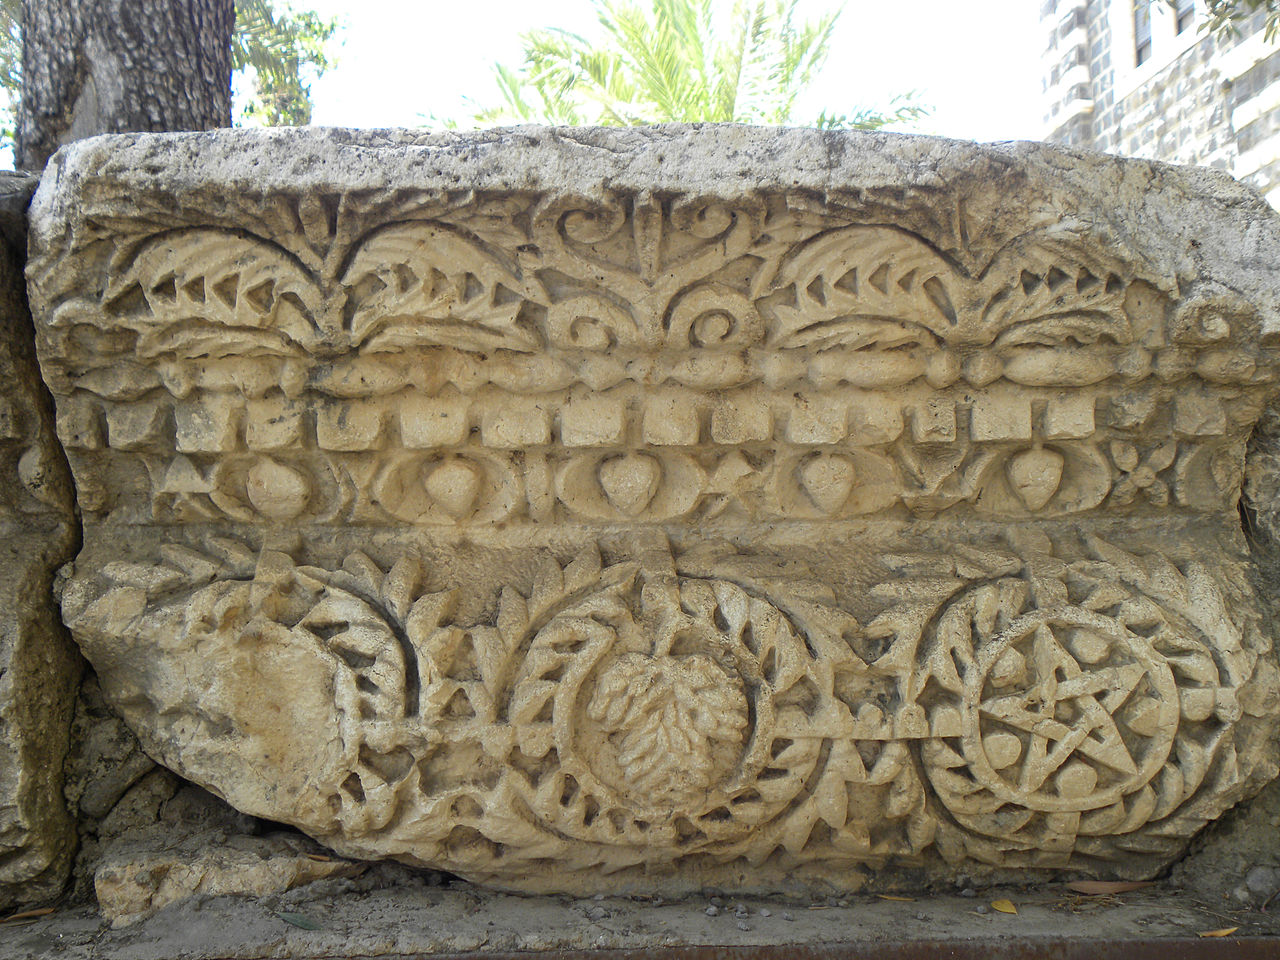 pentagram_and_grape_clusters_from_capernaum_synagogue_5830373959.jpg